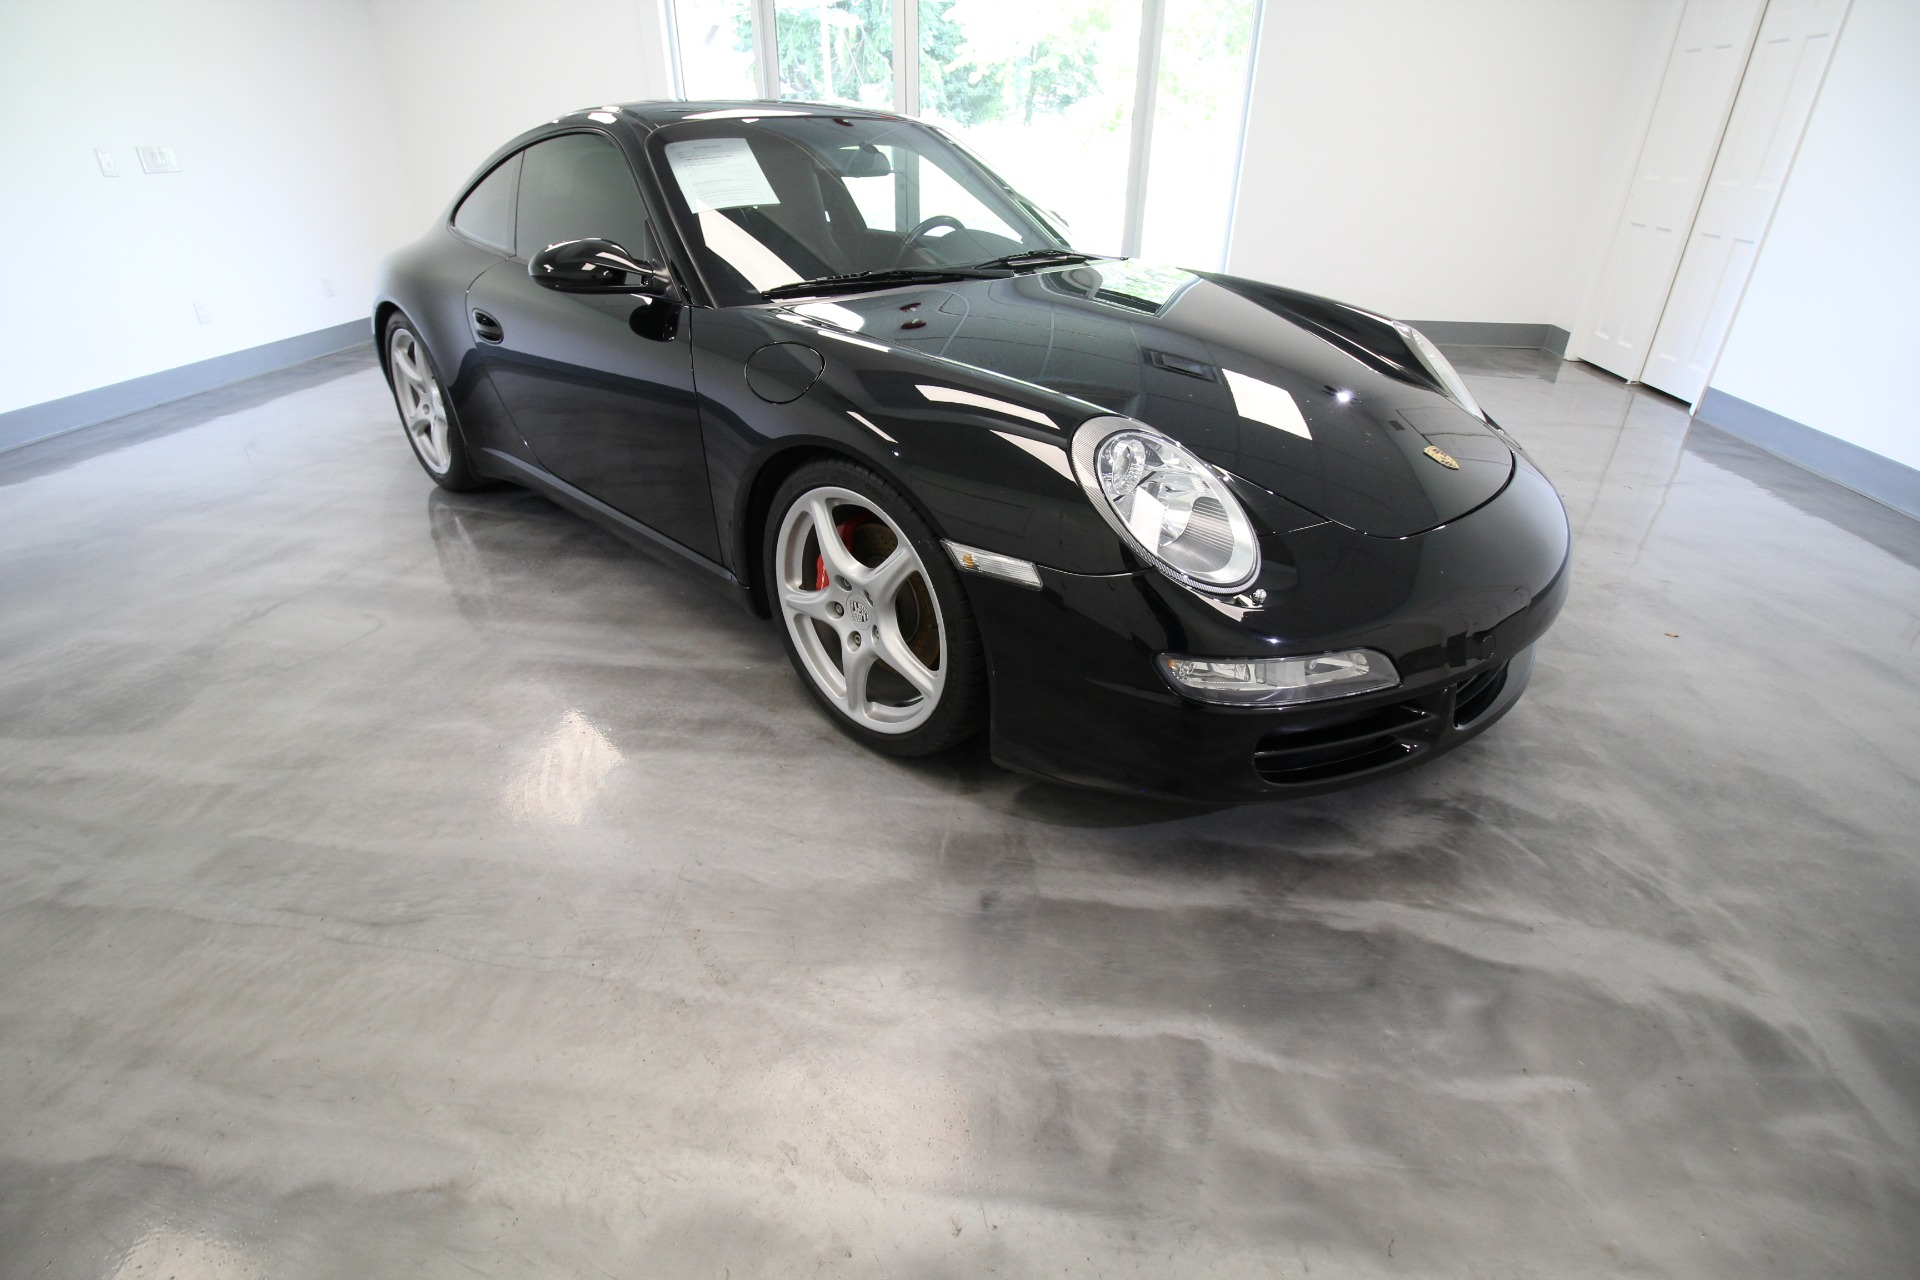 Used 2006 Porsche 911 Carrera S RARE 6 SPEED MANUAL NEW IMS AND CLUTCH IN 17 | Albany, NY